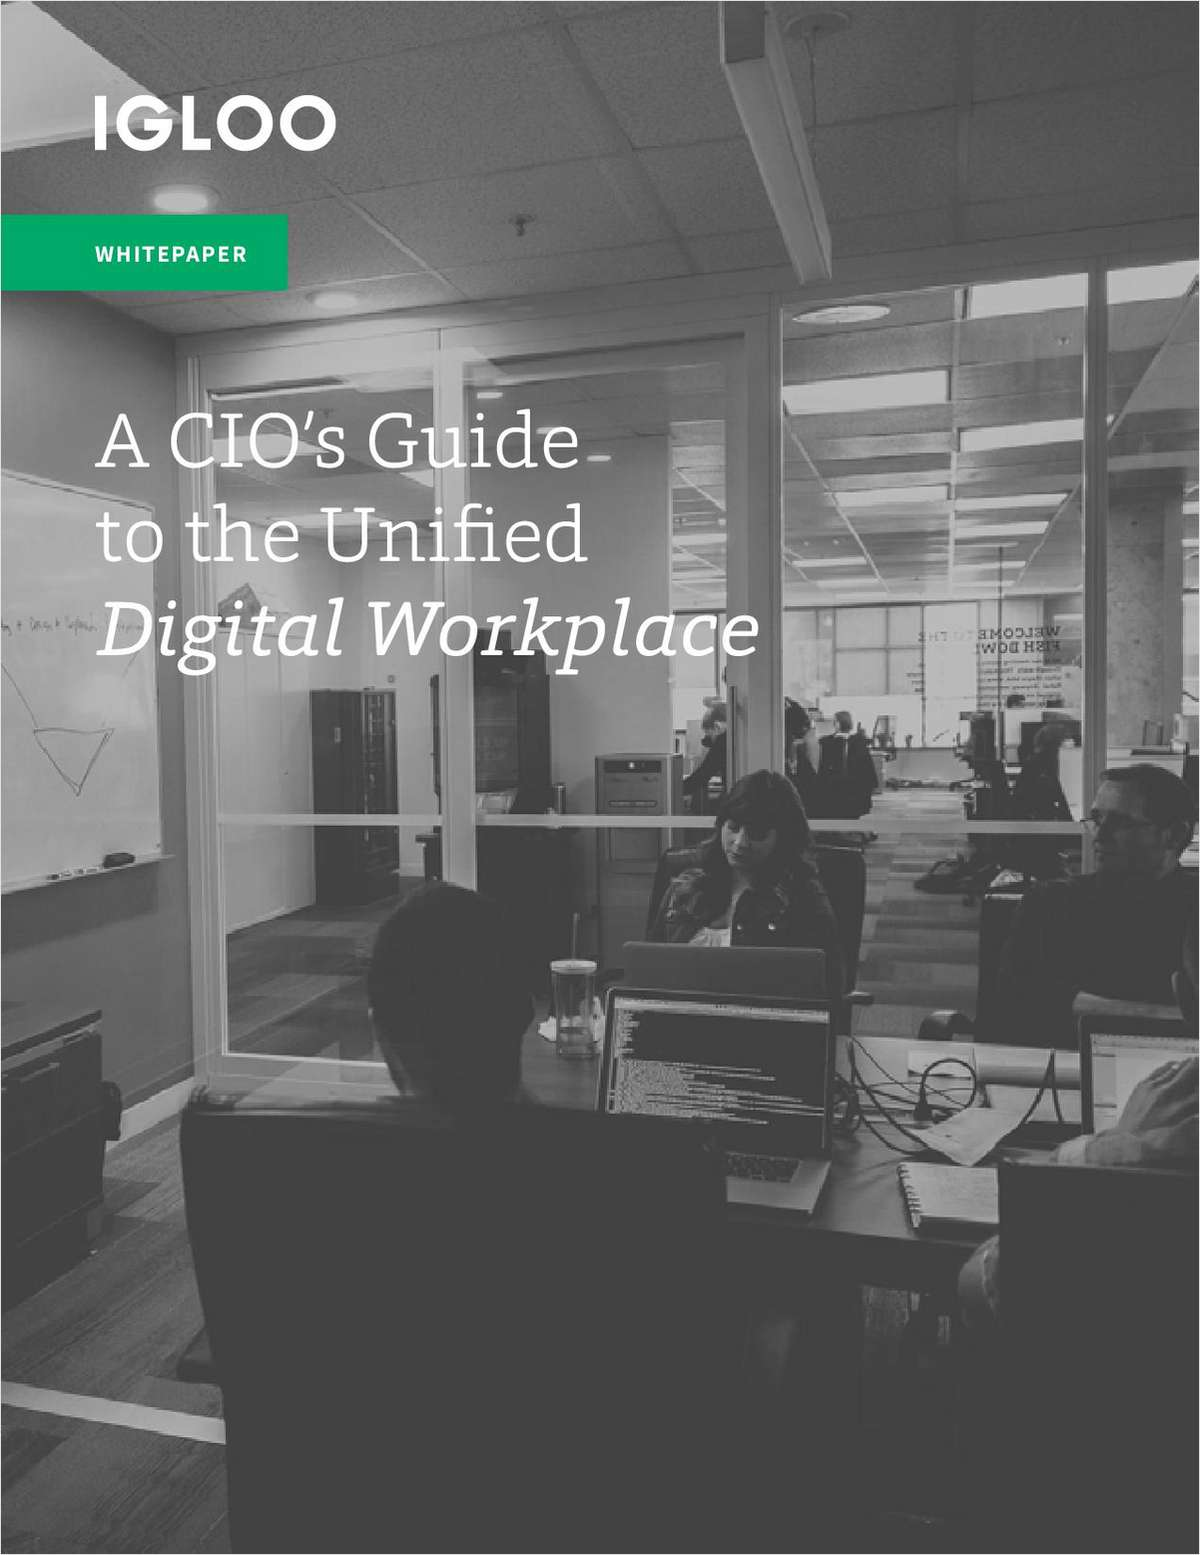 A CIO's Guide to the Digital Workplace